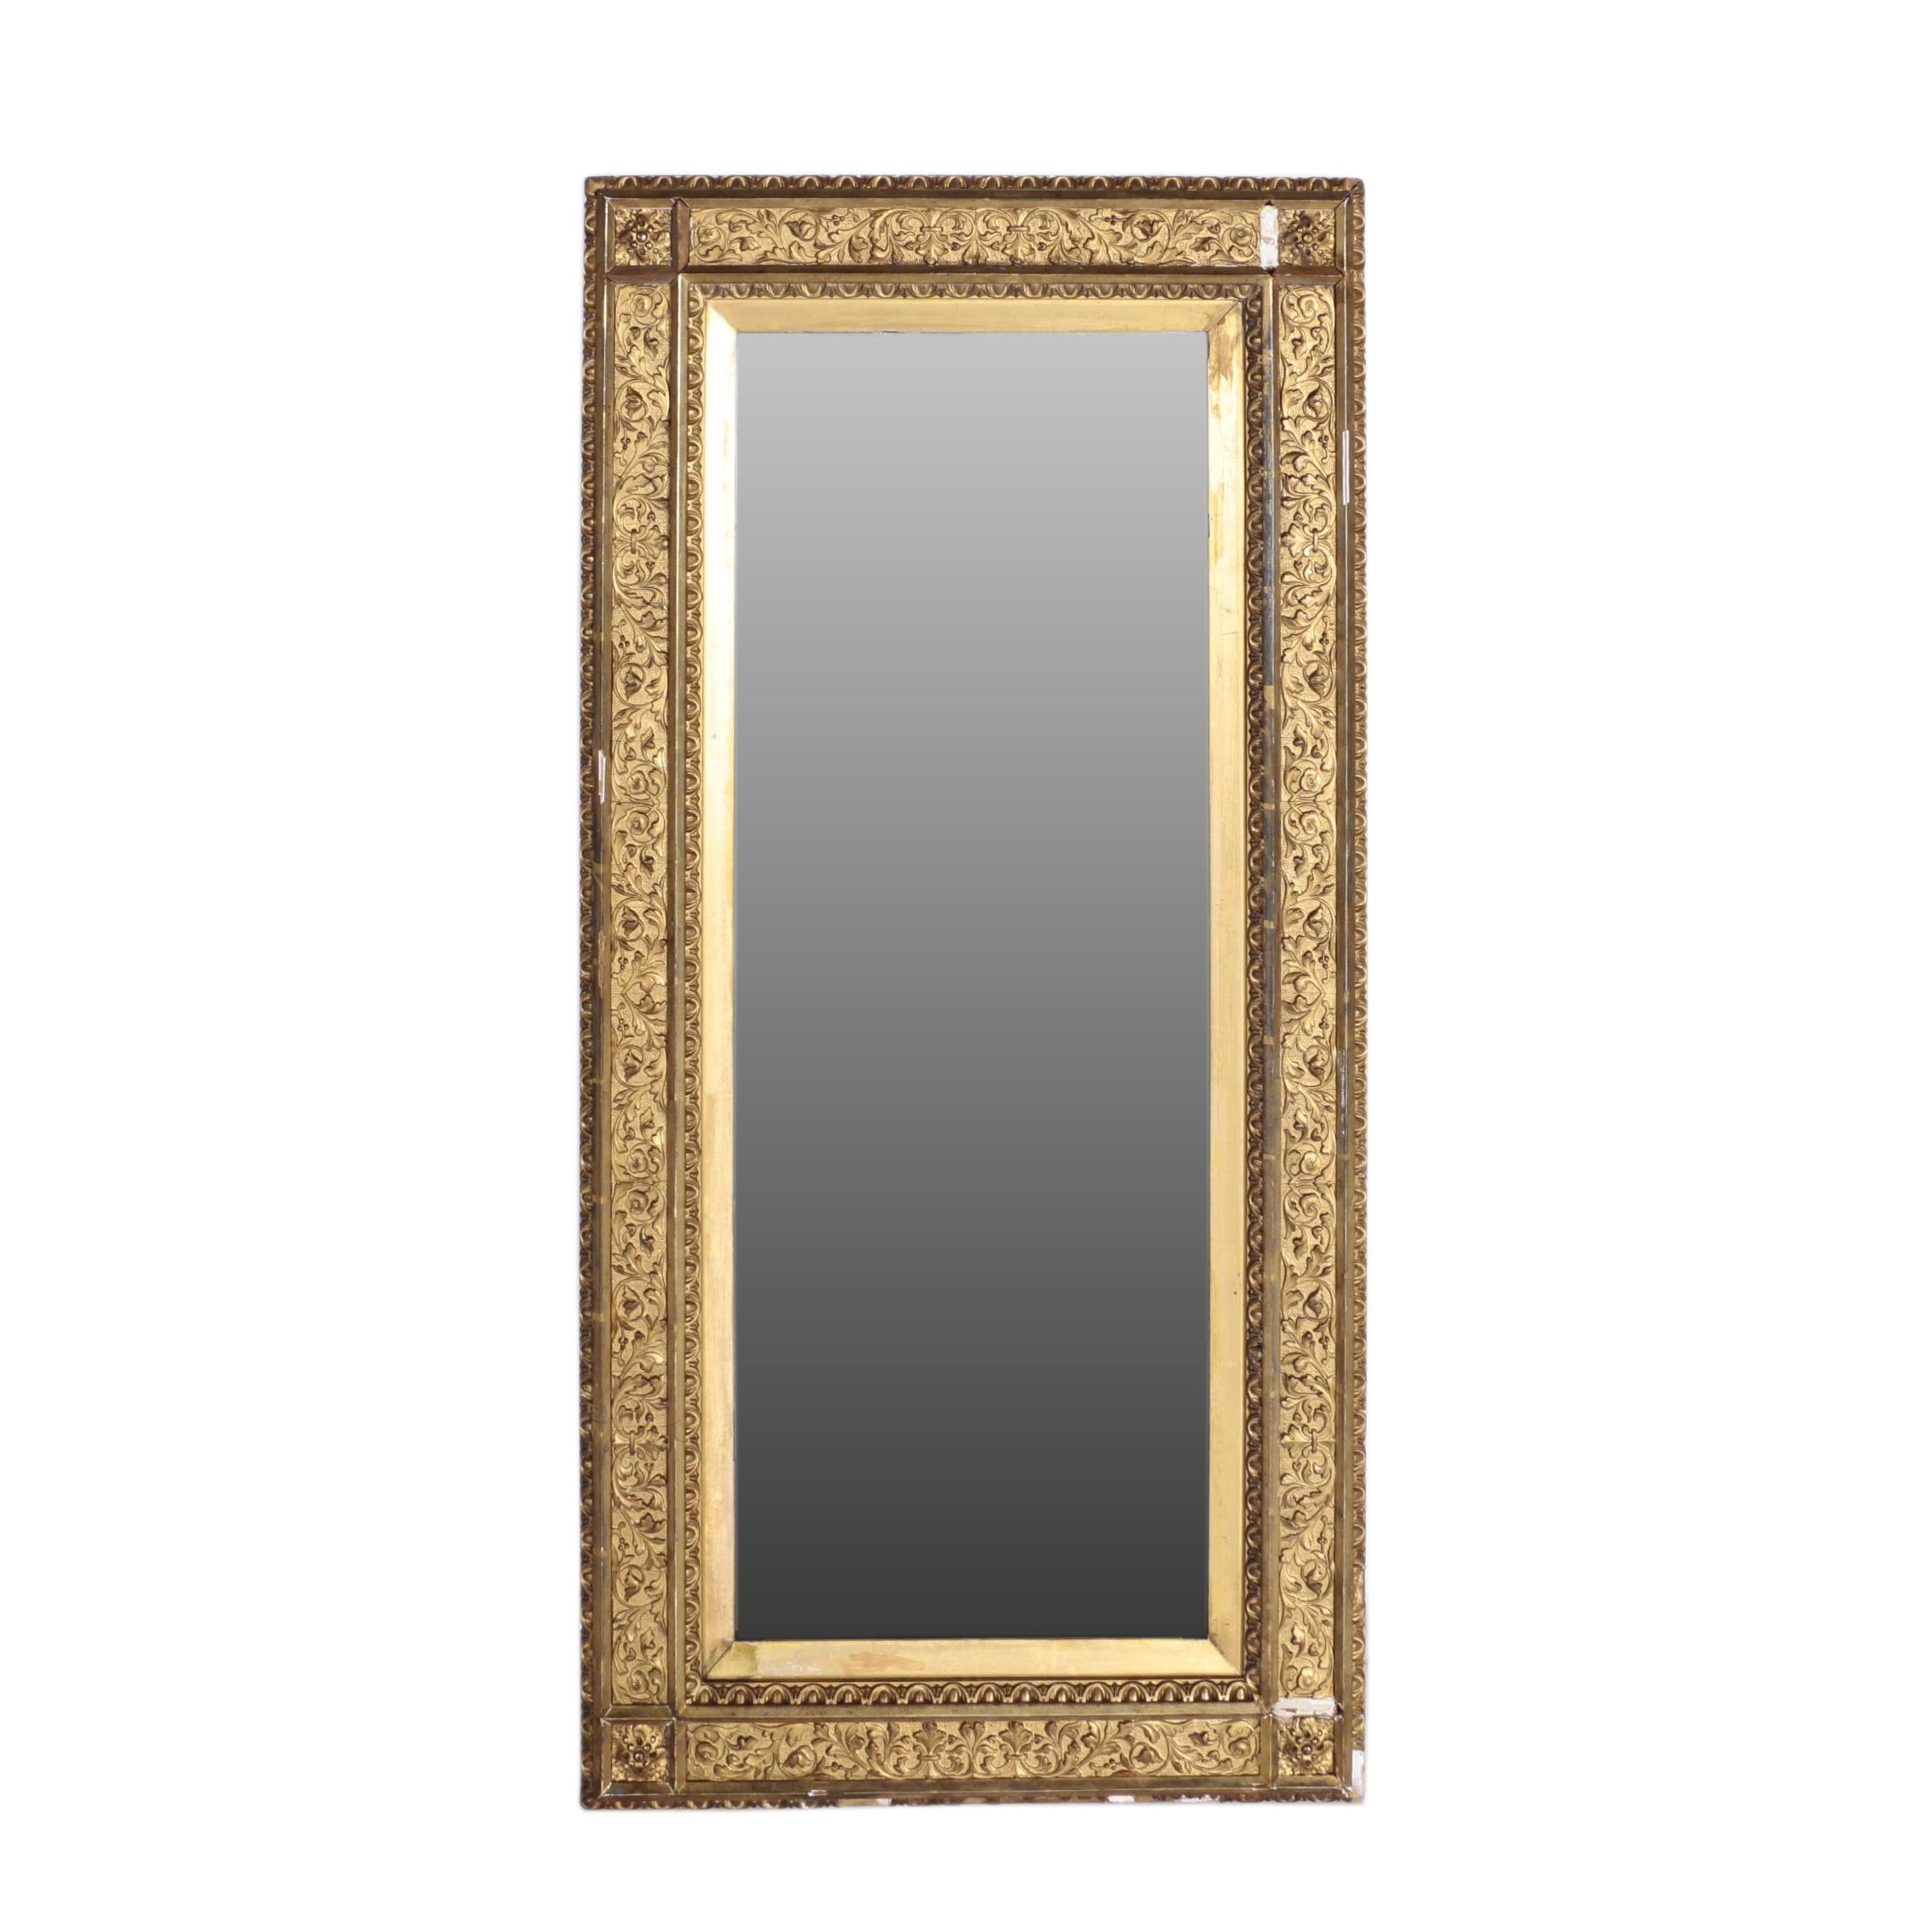 Gold Tone Wooden Framed Mirror